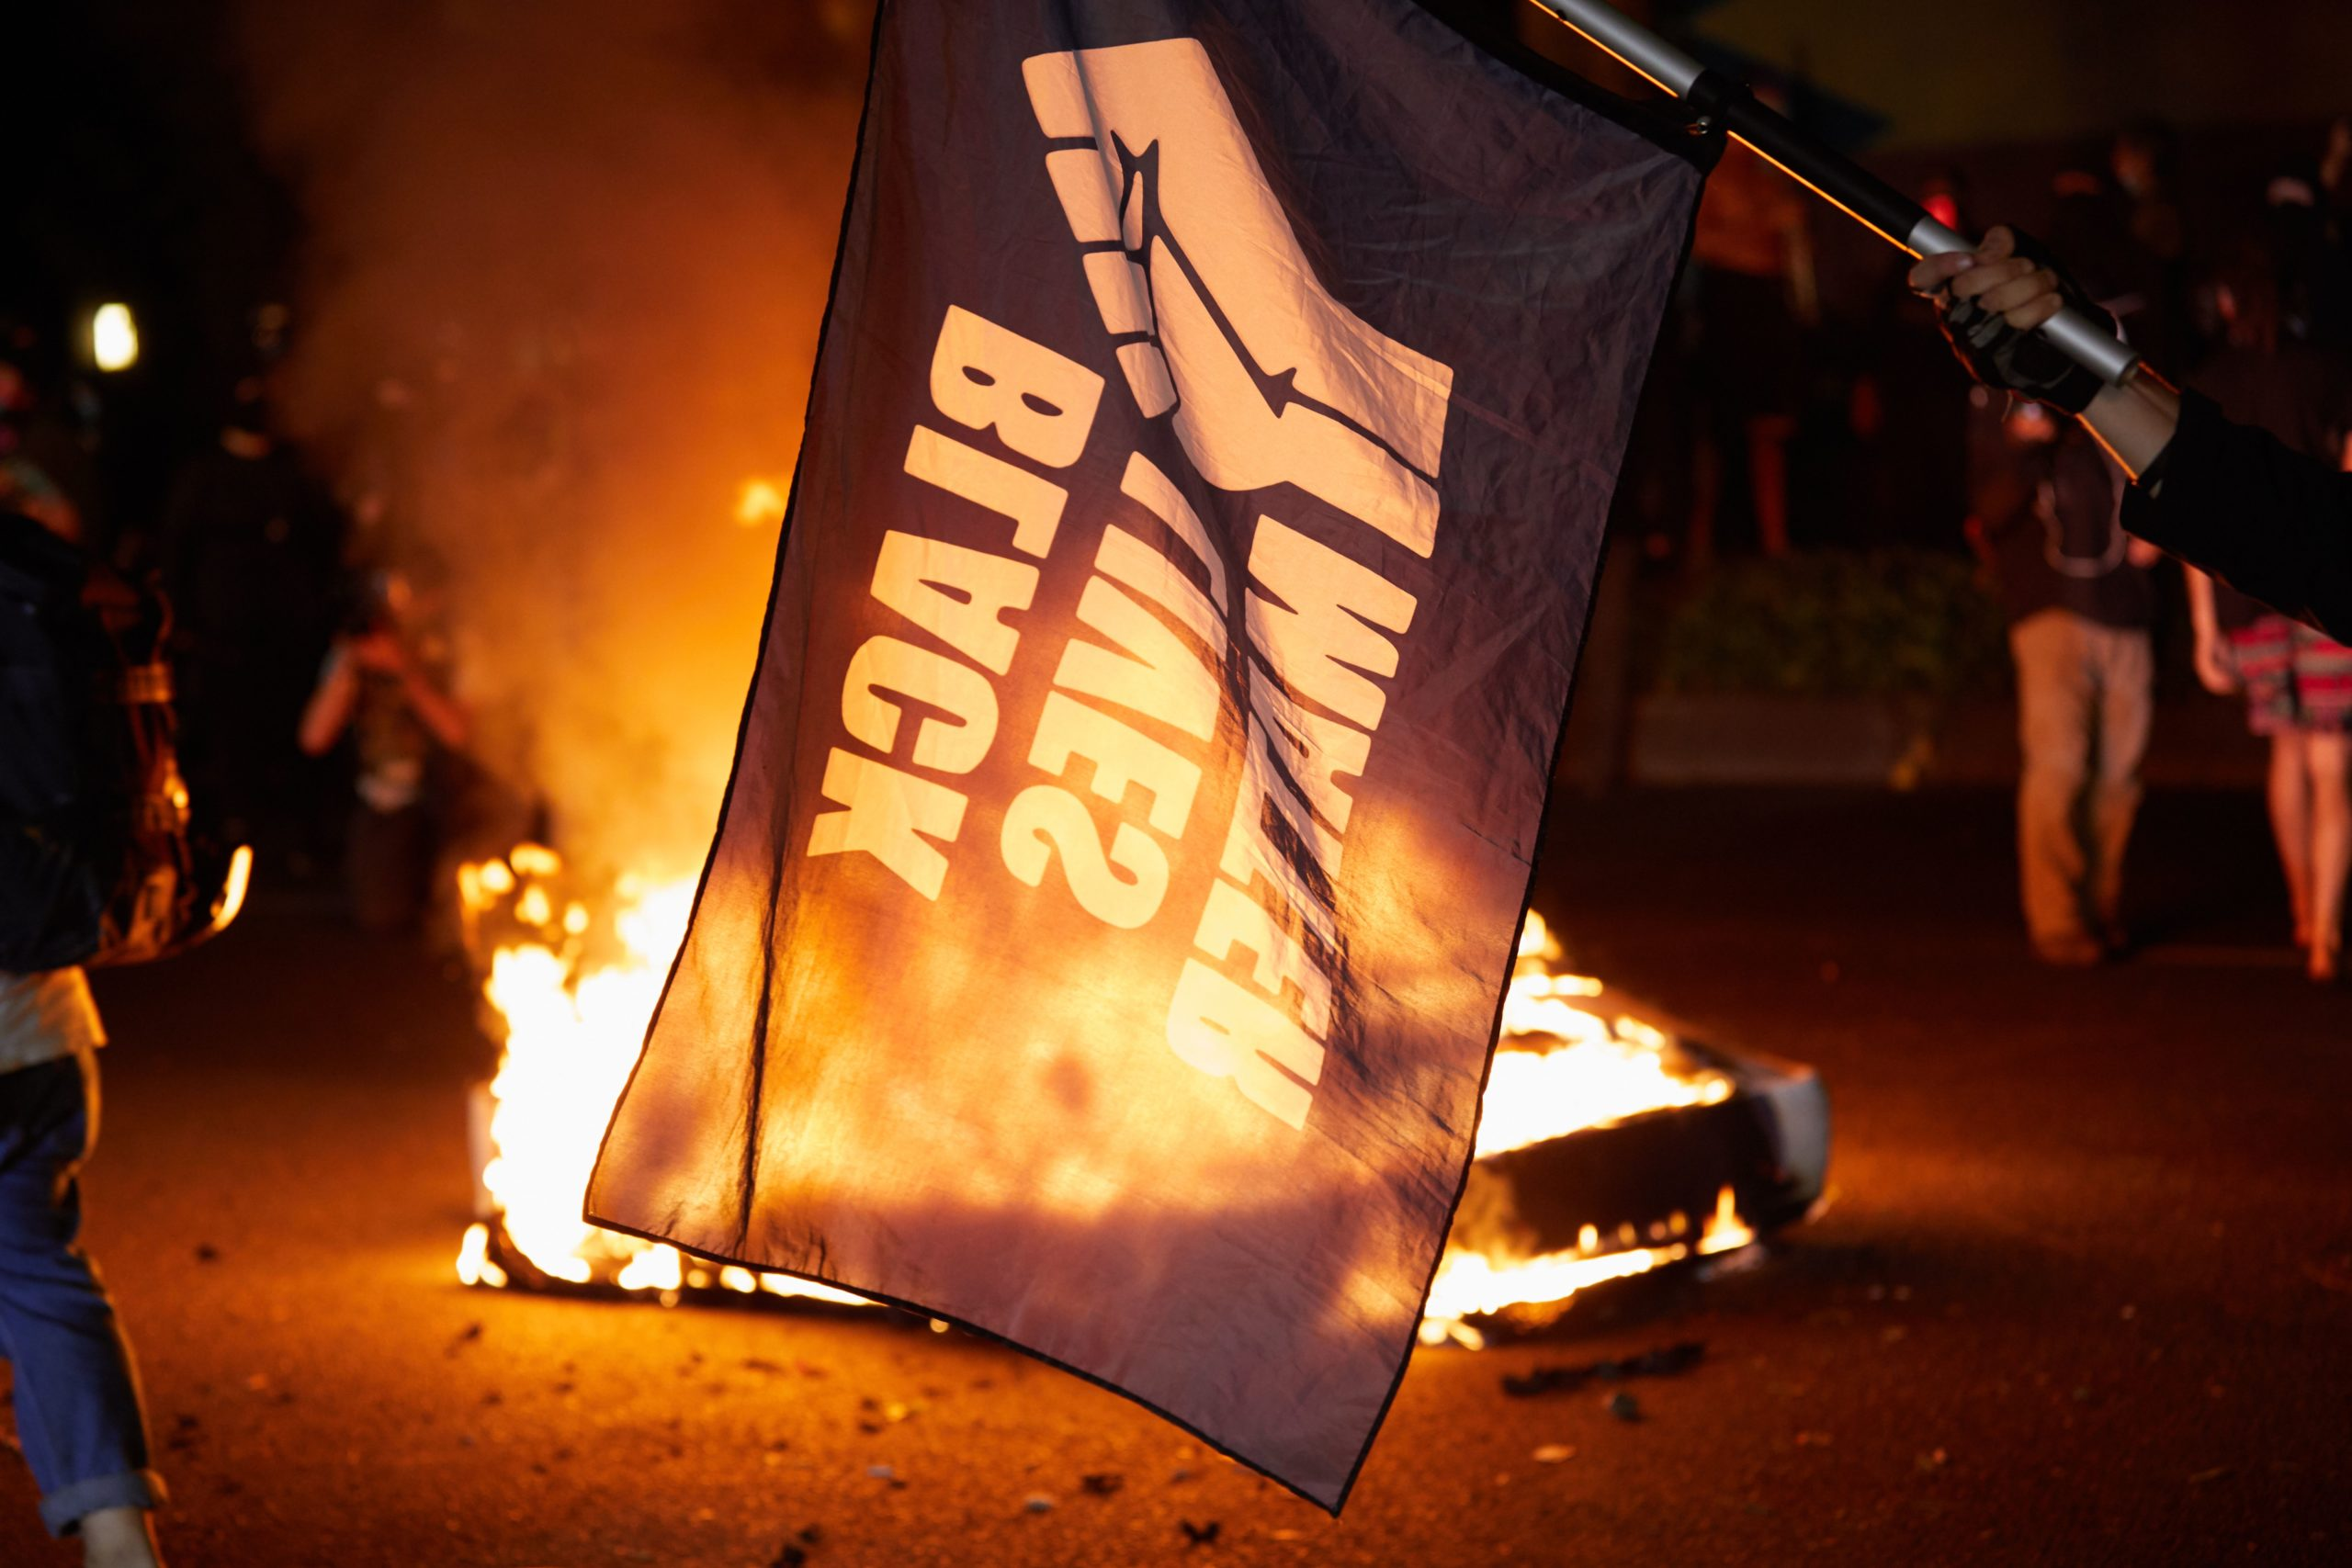 A Black Lives Matter flag waves in front of a fire at the North Precinct Police building in Portland, Oregon on September 6, 2020. - Protestors are marching for an end to racial inequality and police violence. Aaron Danielson, 39, a supporter of a far-right group called Patriot Prayer, was fatally shot August 29, 2020, in Portland, Oregon after he joined pro-Trump supporters who descended on the western US city, sparking confrontations with Black Lives Matter counter-protesters. (Photo by Allison Dinner / AFP) (Photo by ALLISON DINNER/AFP via Getty Images)